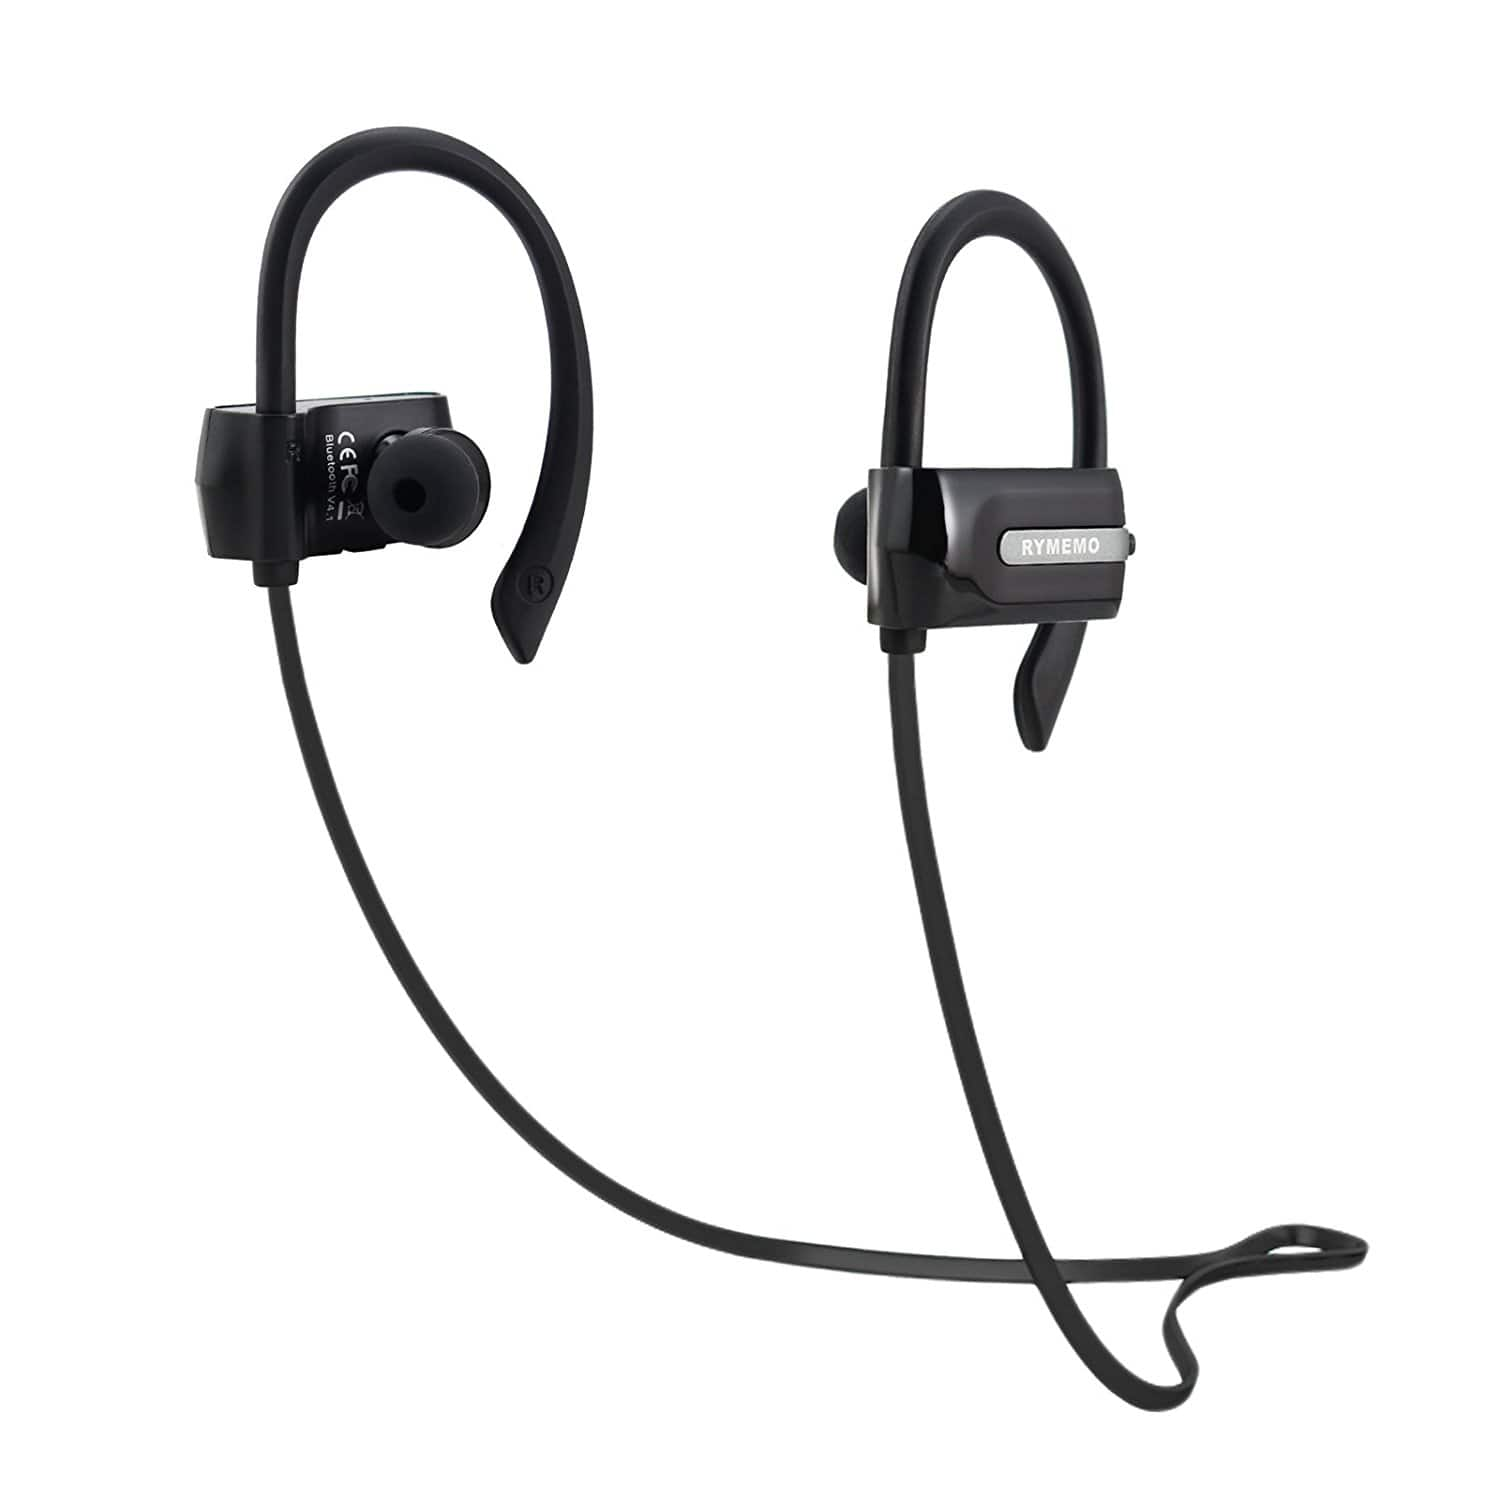 Bluetooth Headset Wireless Earphones In-Ear Earbuds with Noise Cancellation Built-in Microphone $9.60